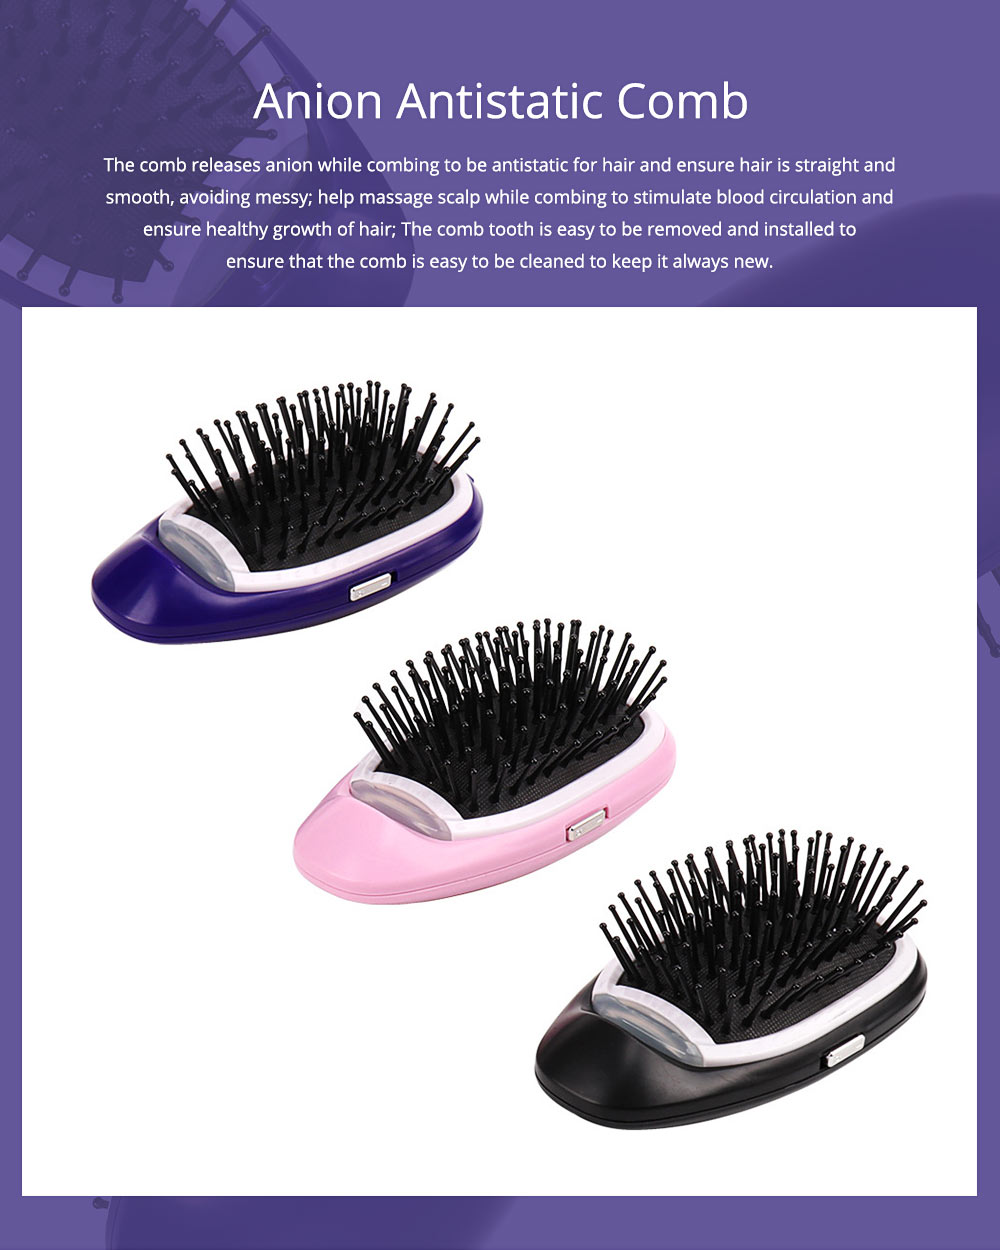 Anion Antistatic Comb for Straight and Curled Hair Combing Portable Message Comb Antistatic Comb Shaking Comb Hairdressing Tools 0